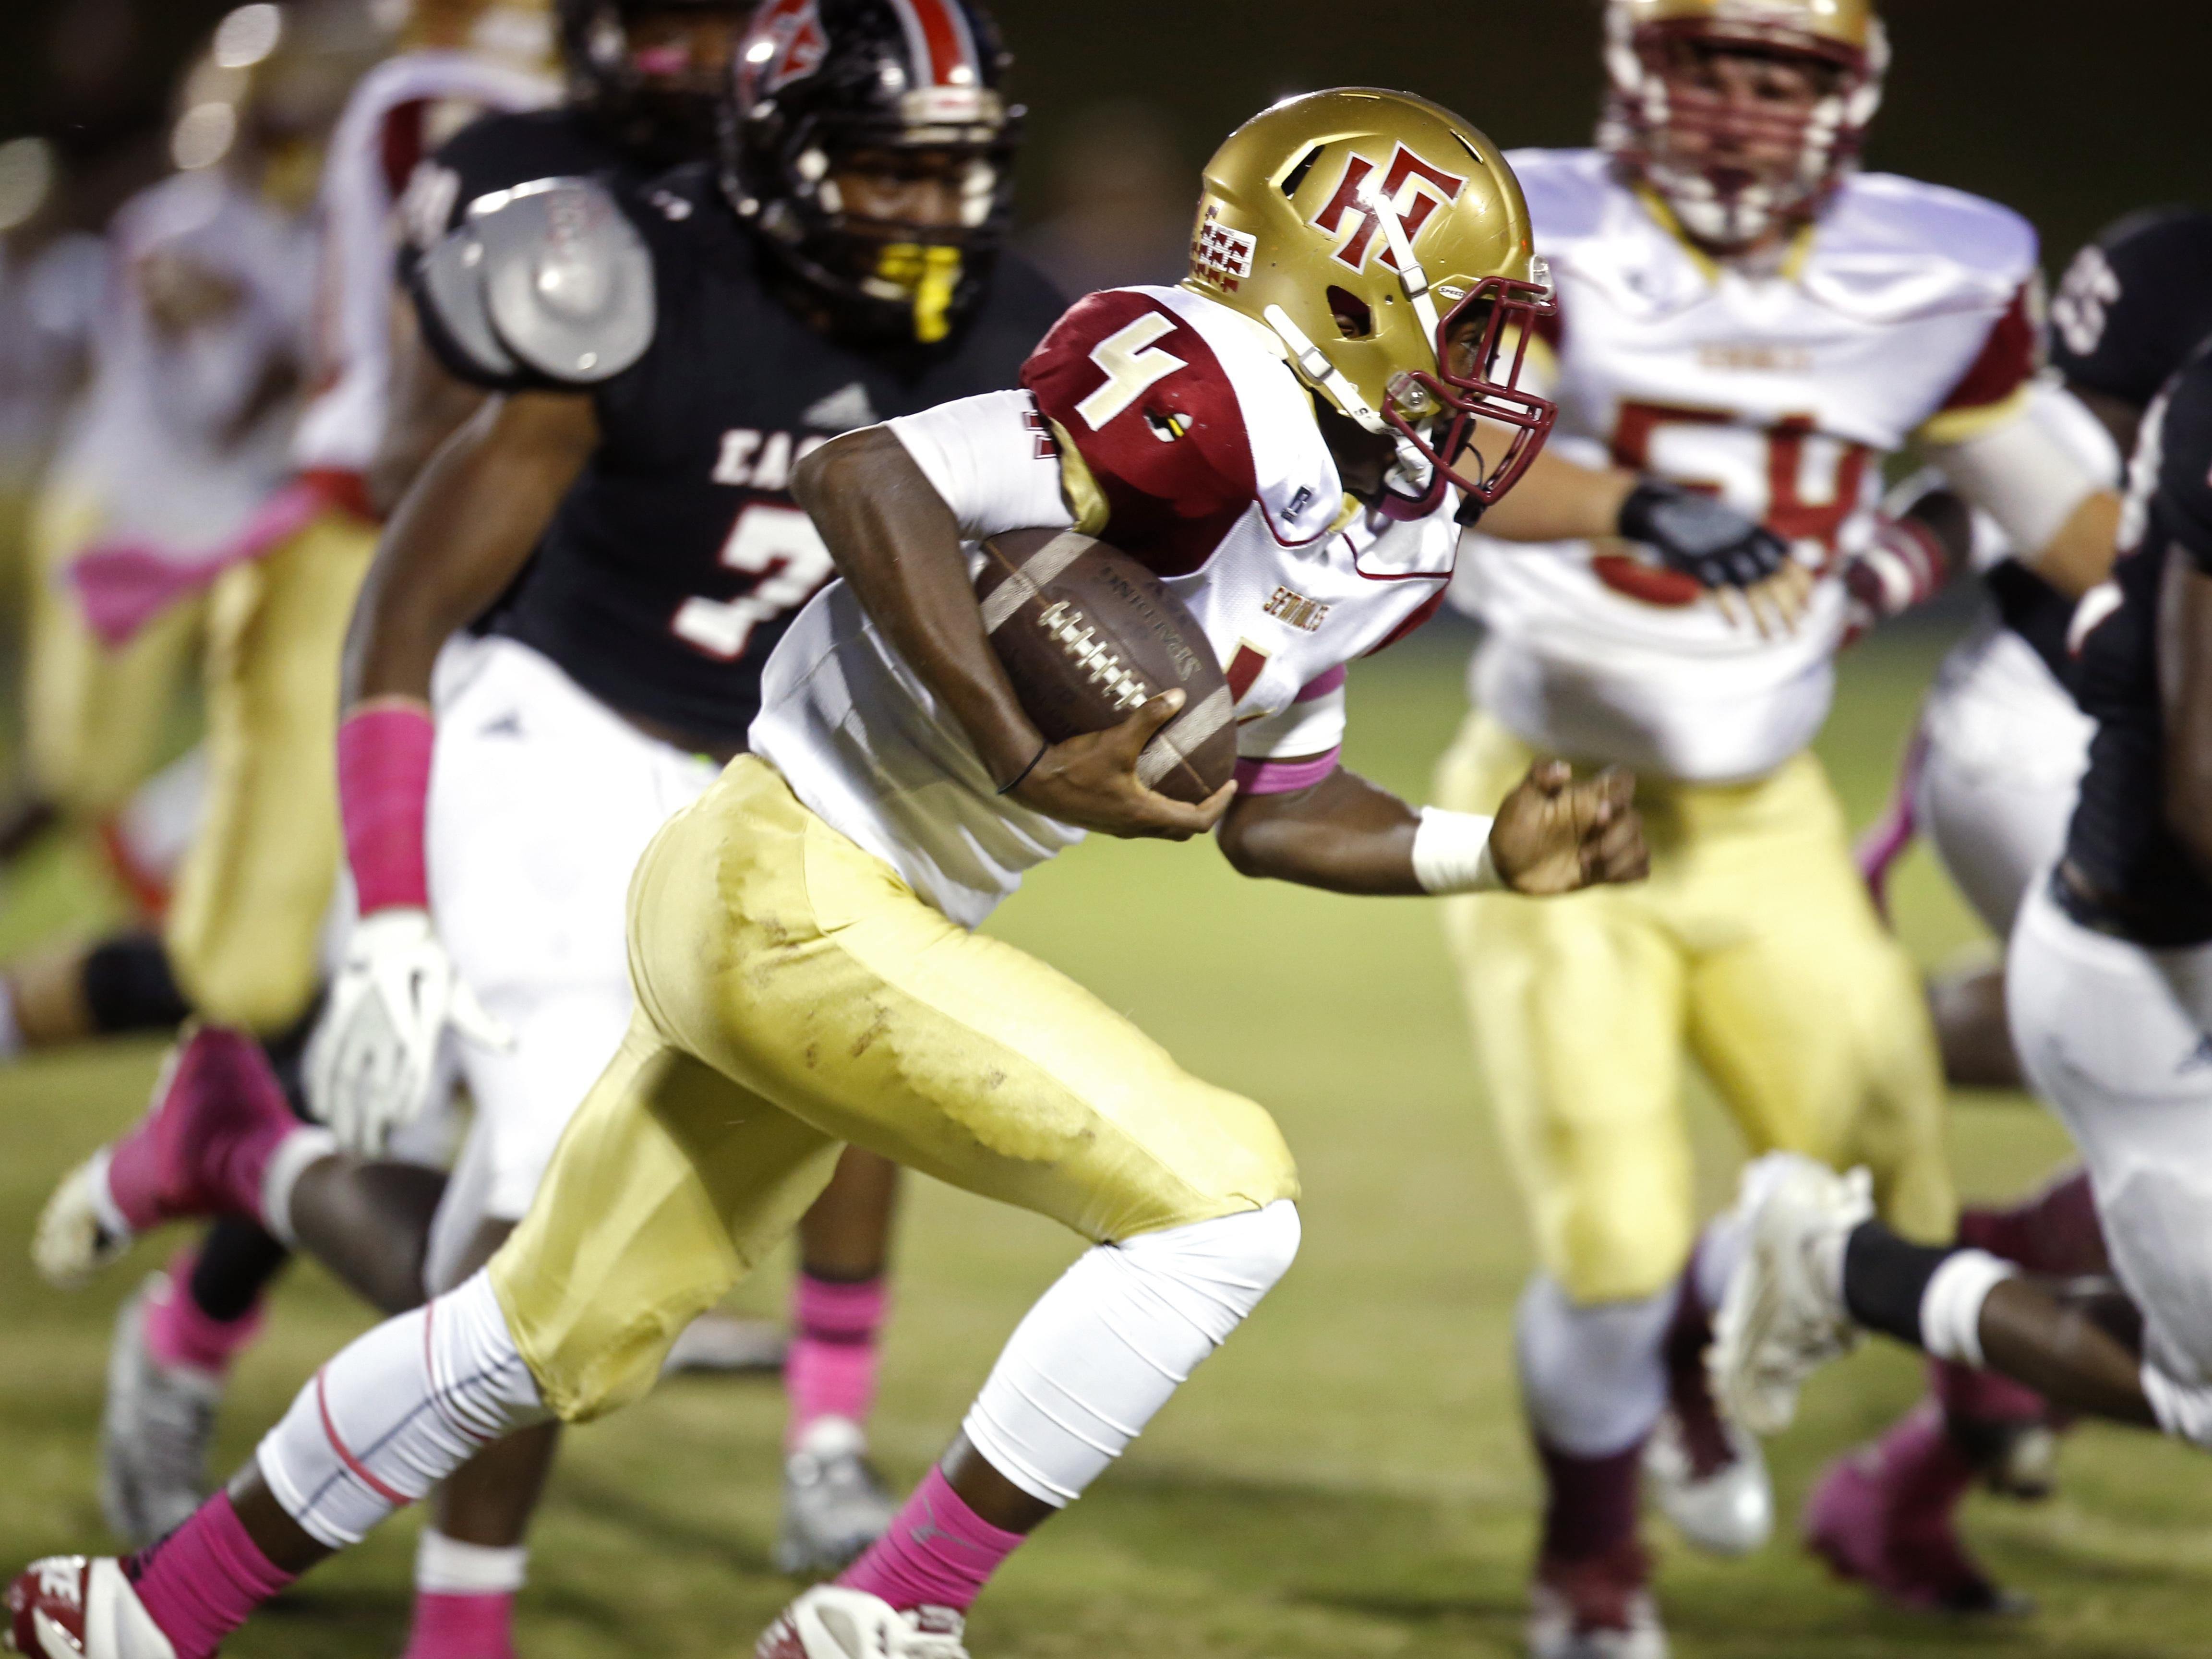 Florida High's Kevin Sawyer Jr. runs the ball against NFC during their game on Friday.